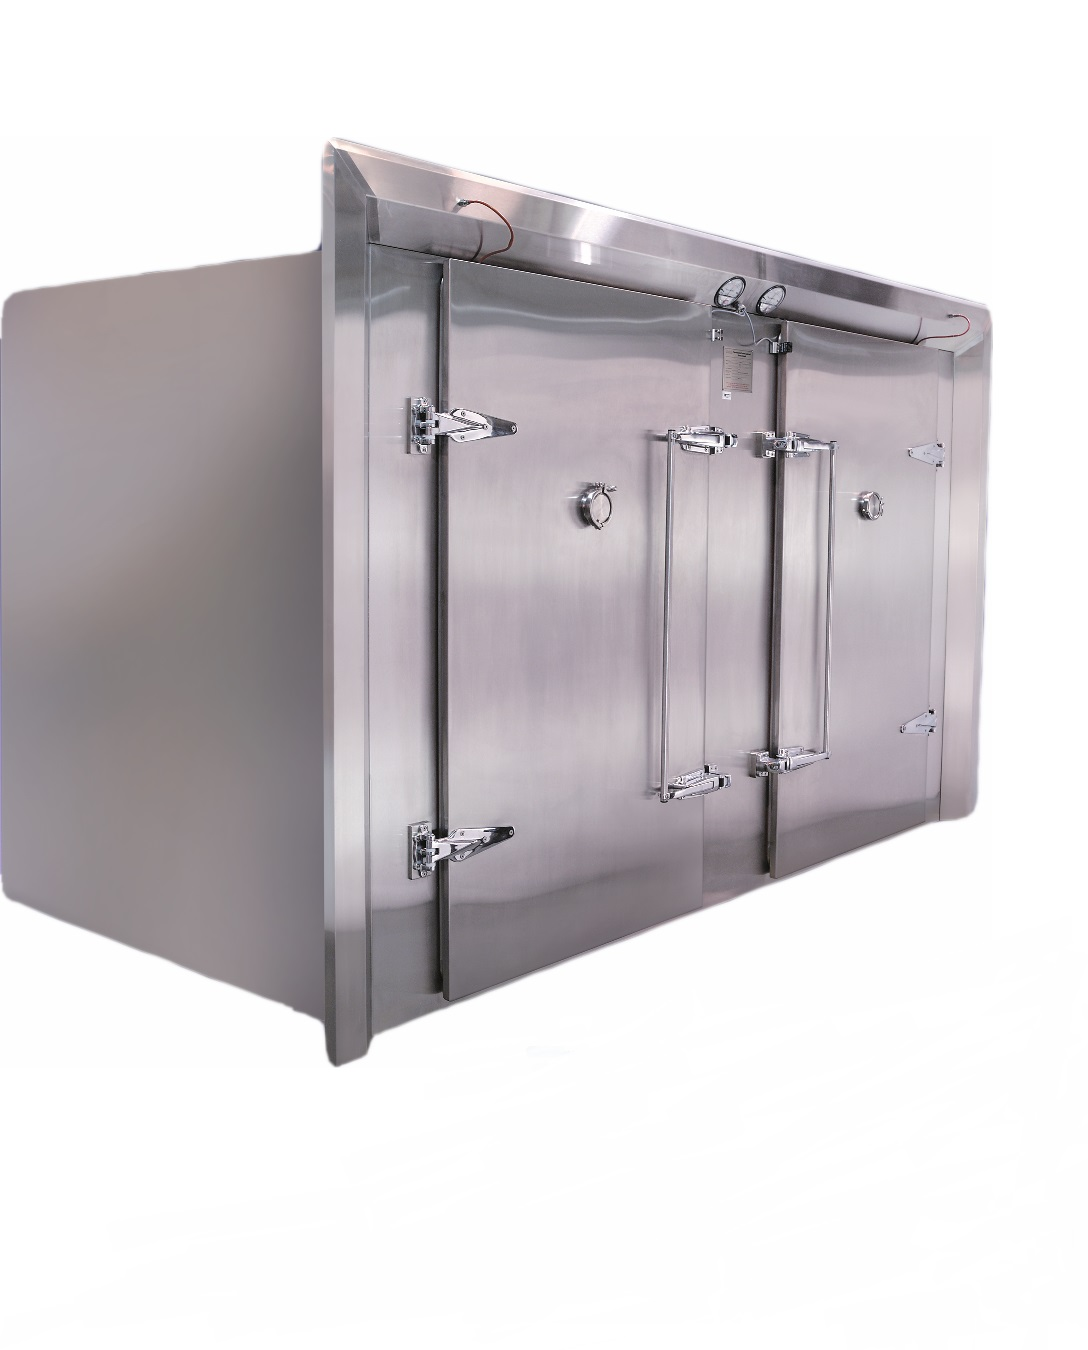 Tray Dry Oven (400 kg)